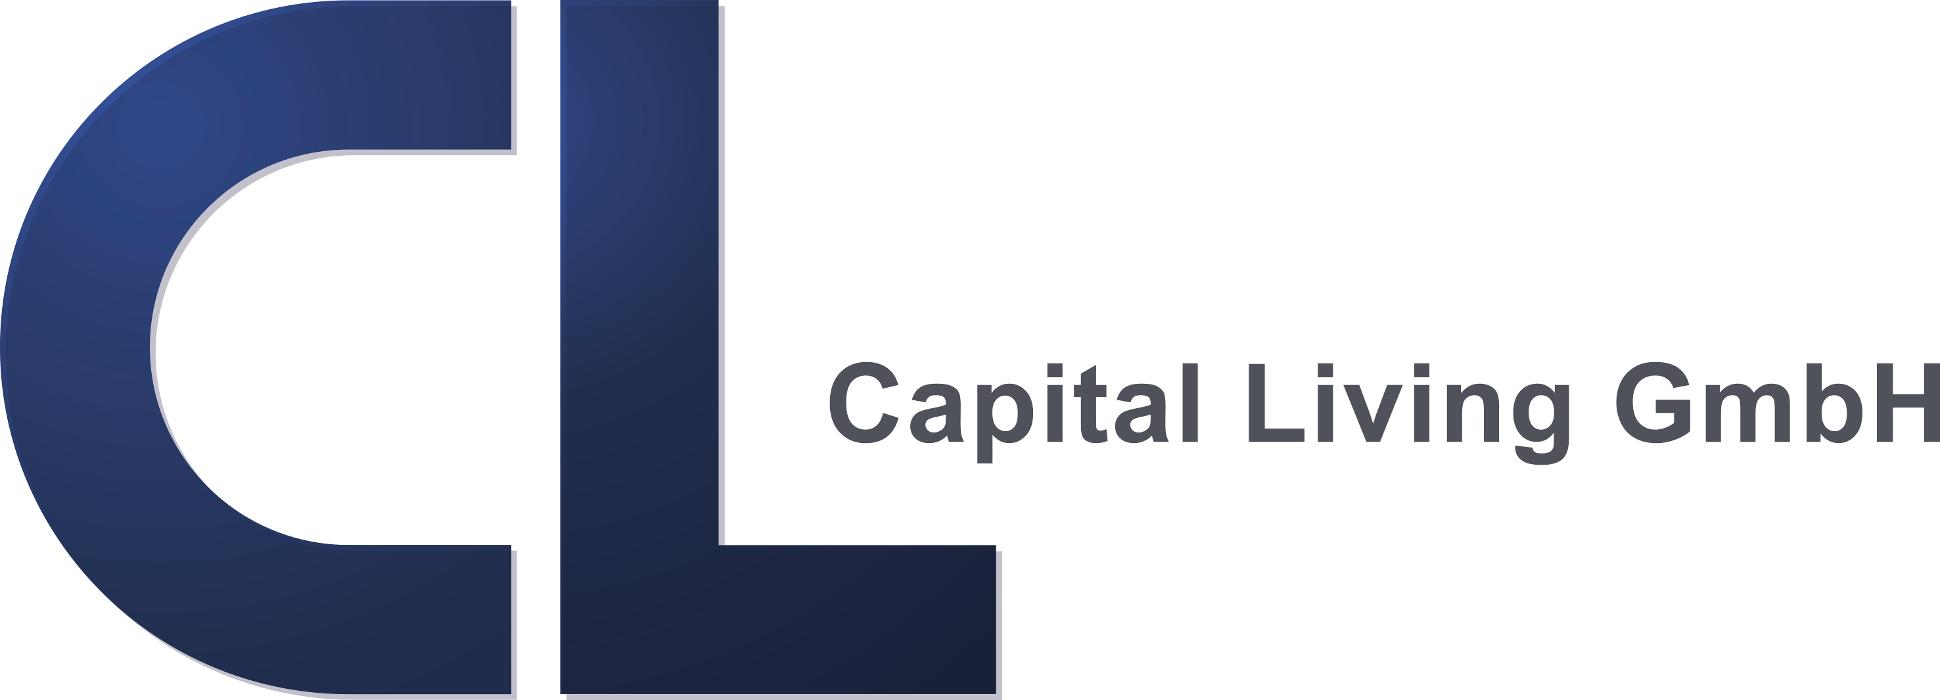 Bild zu CL Capital Living GmbH in Bochum